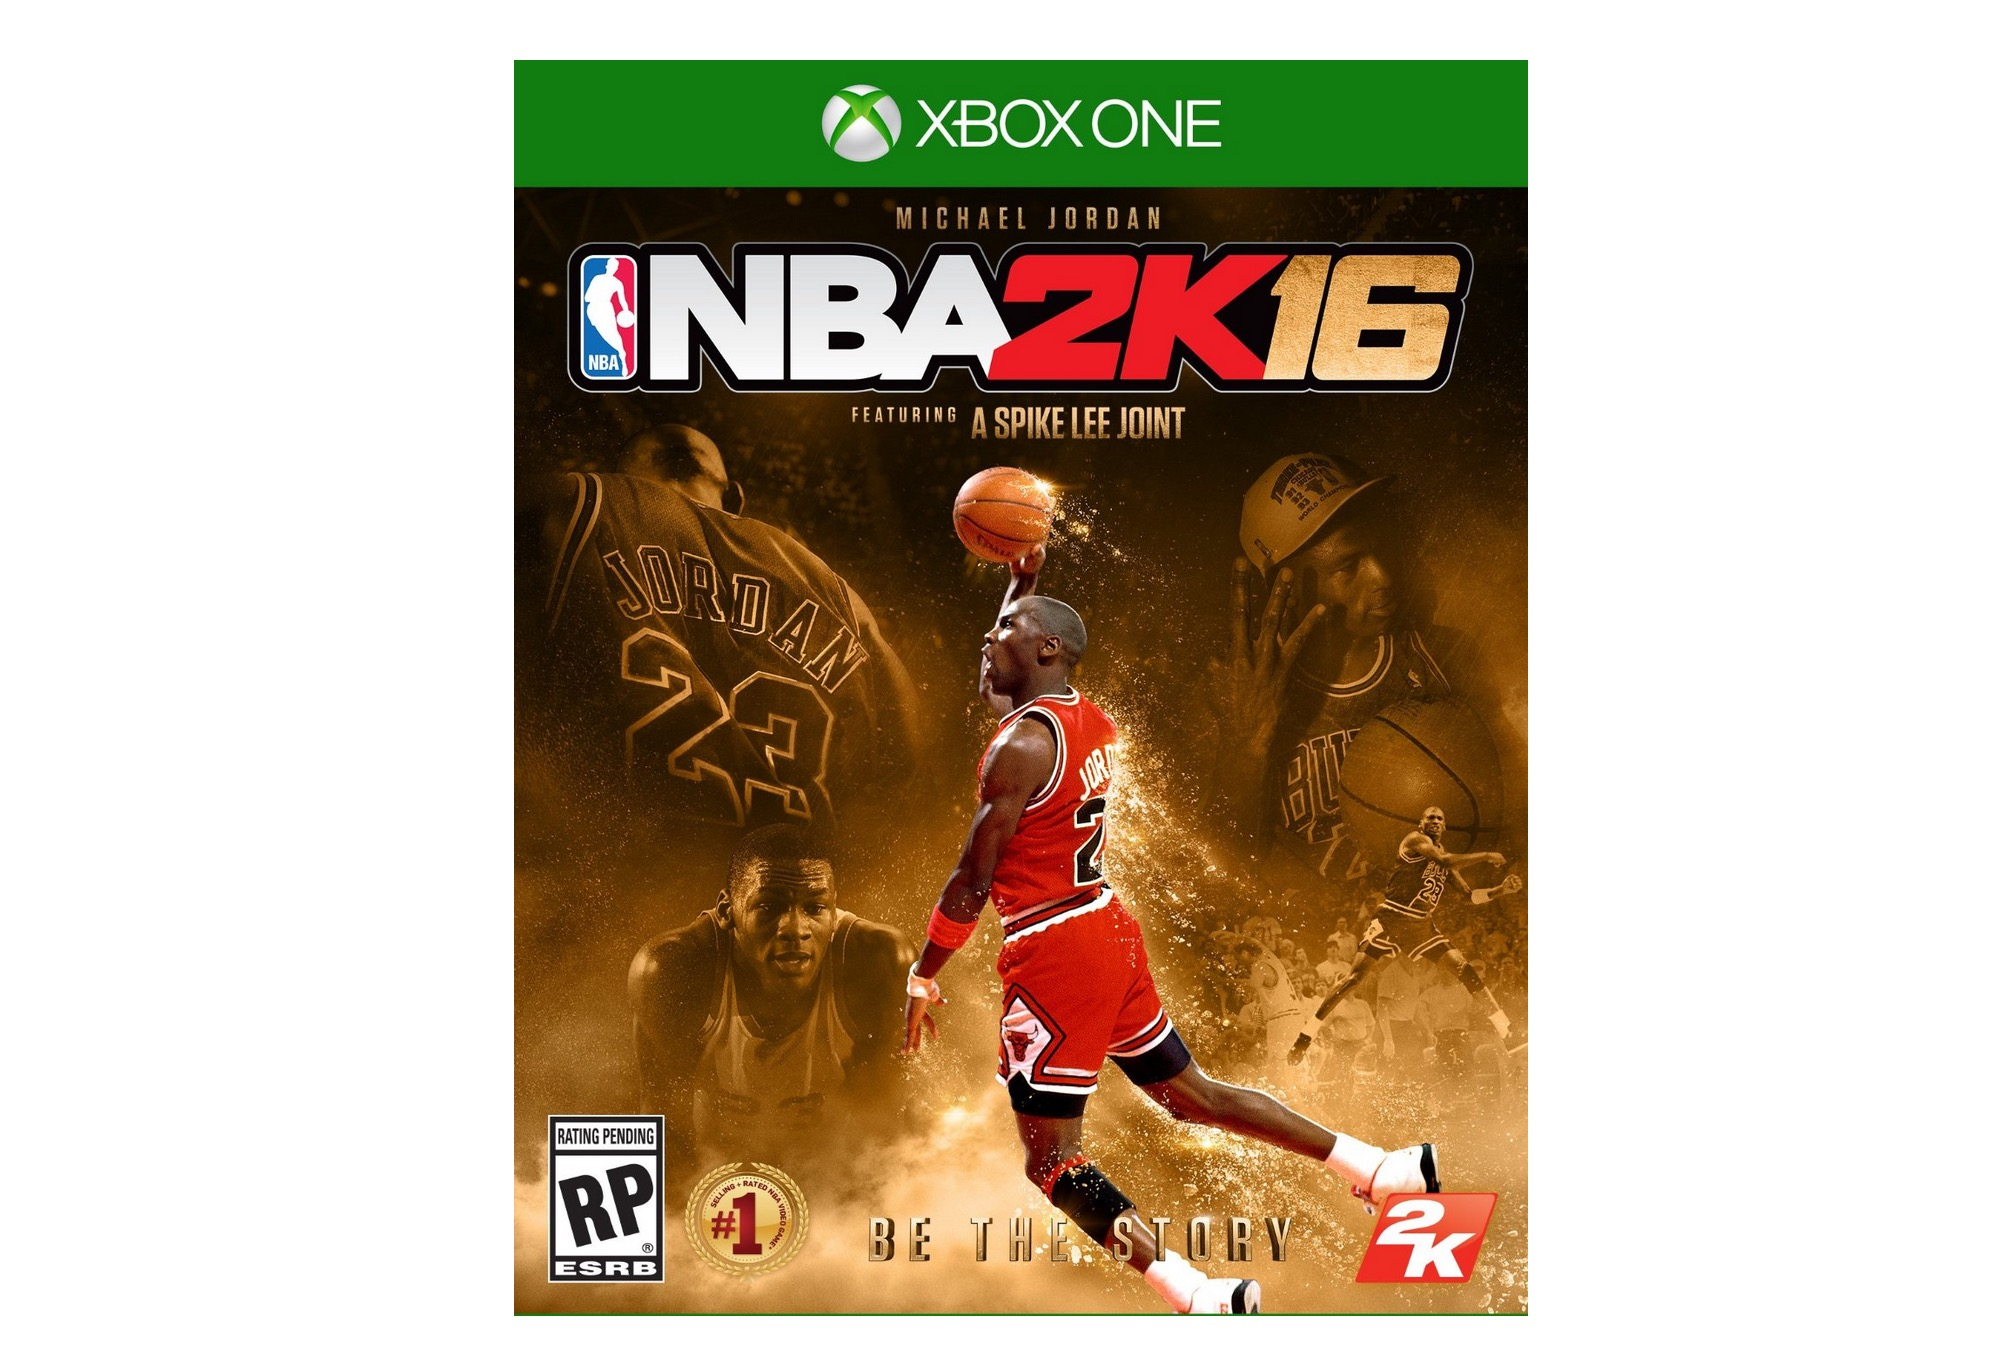 ... nba 2k17 nba 2k17 news release date pc game release dates new pc games